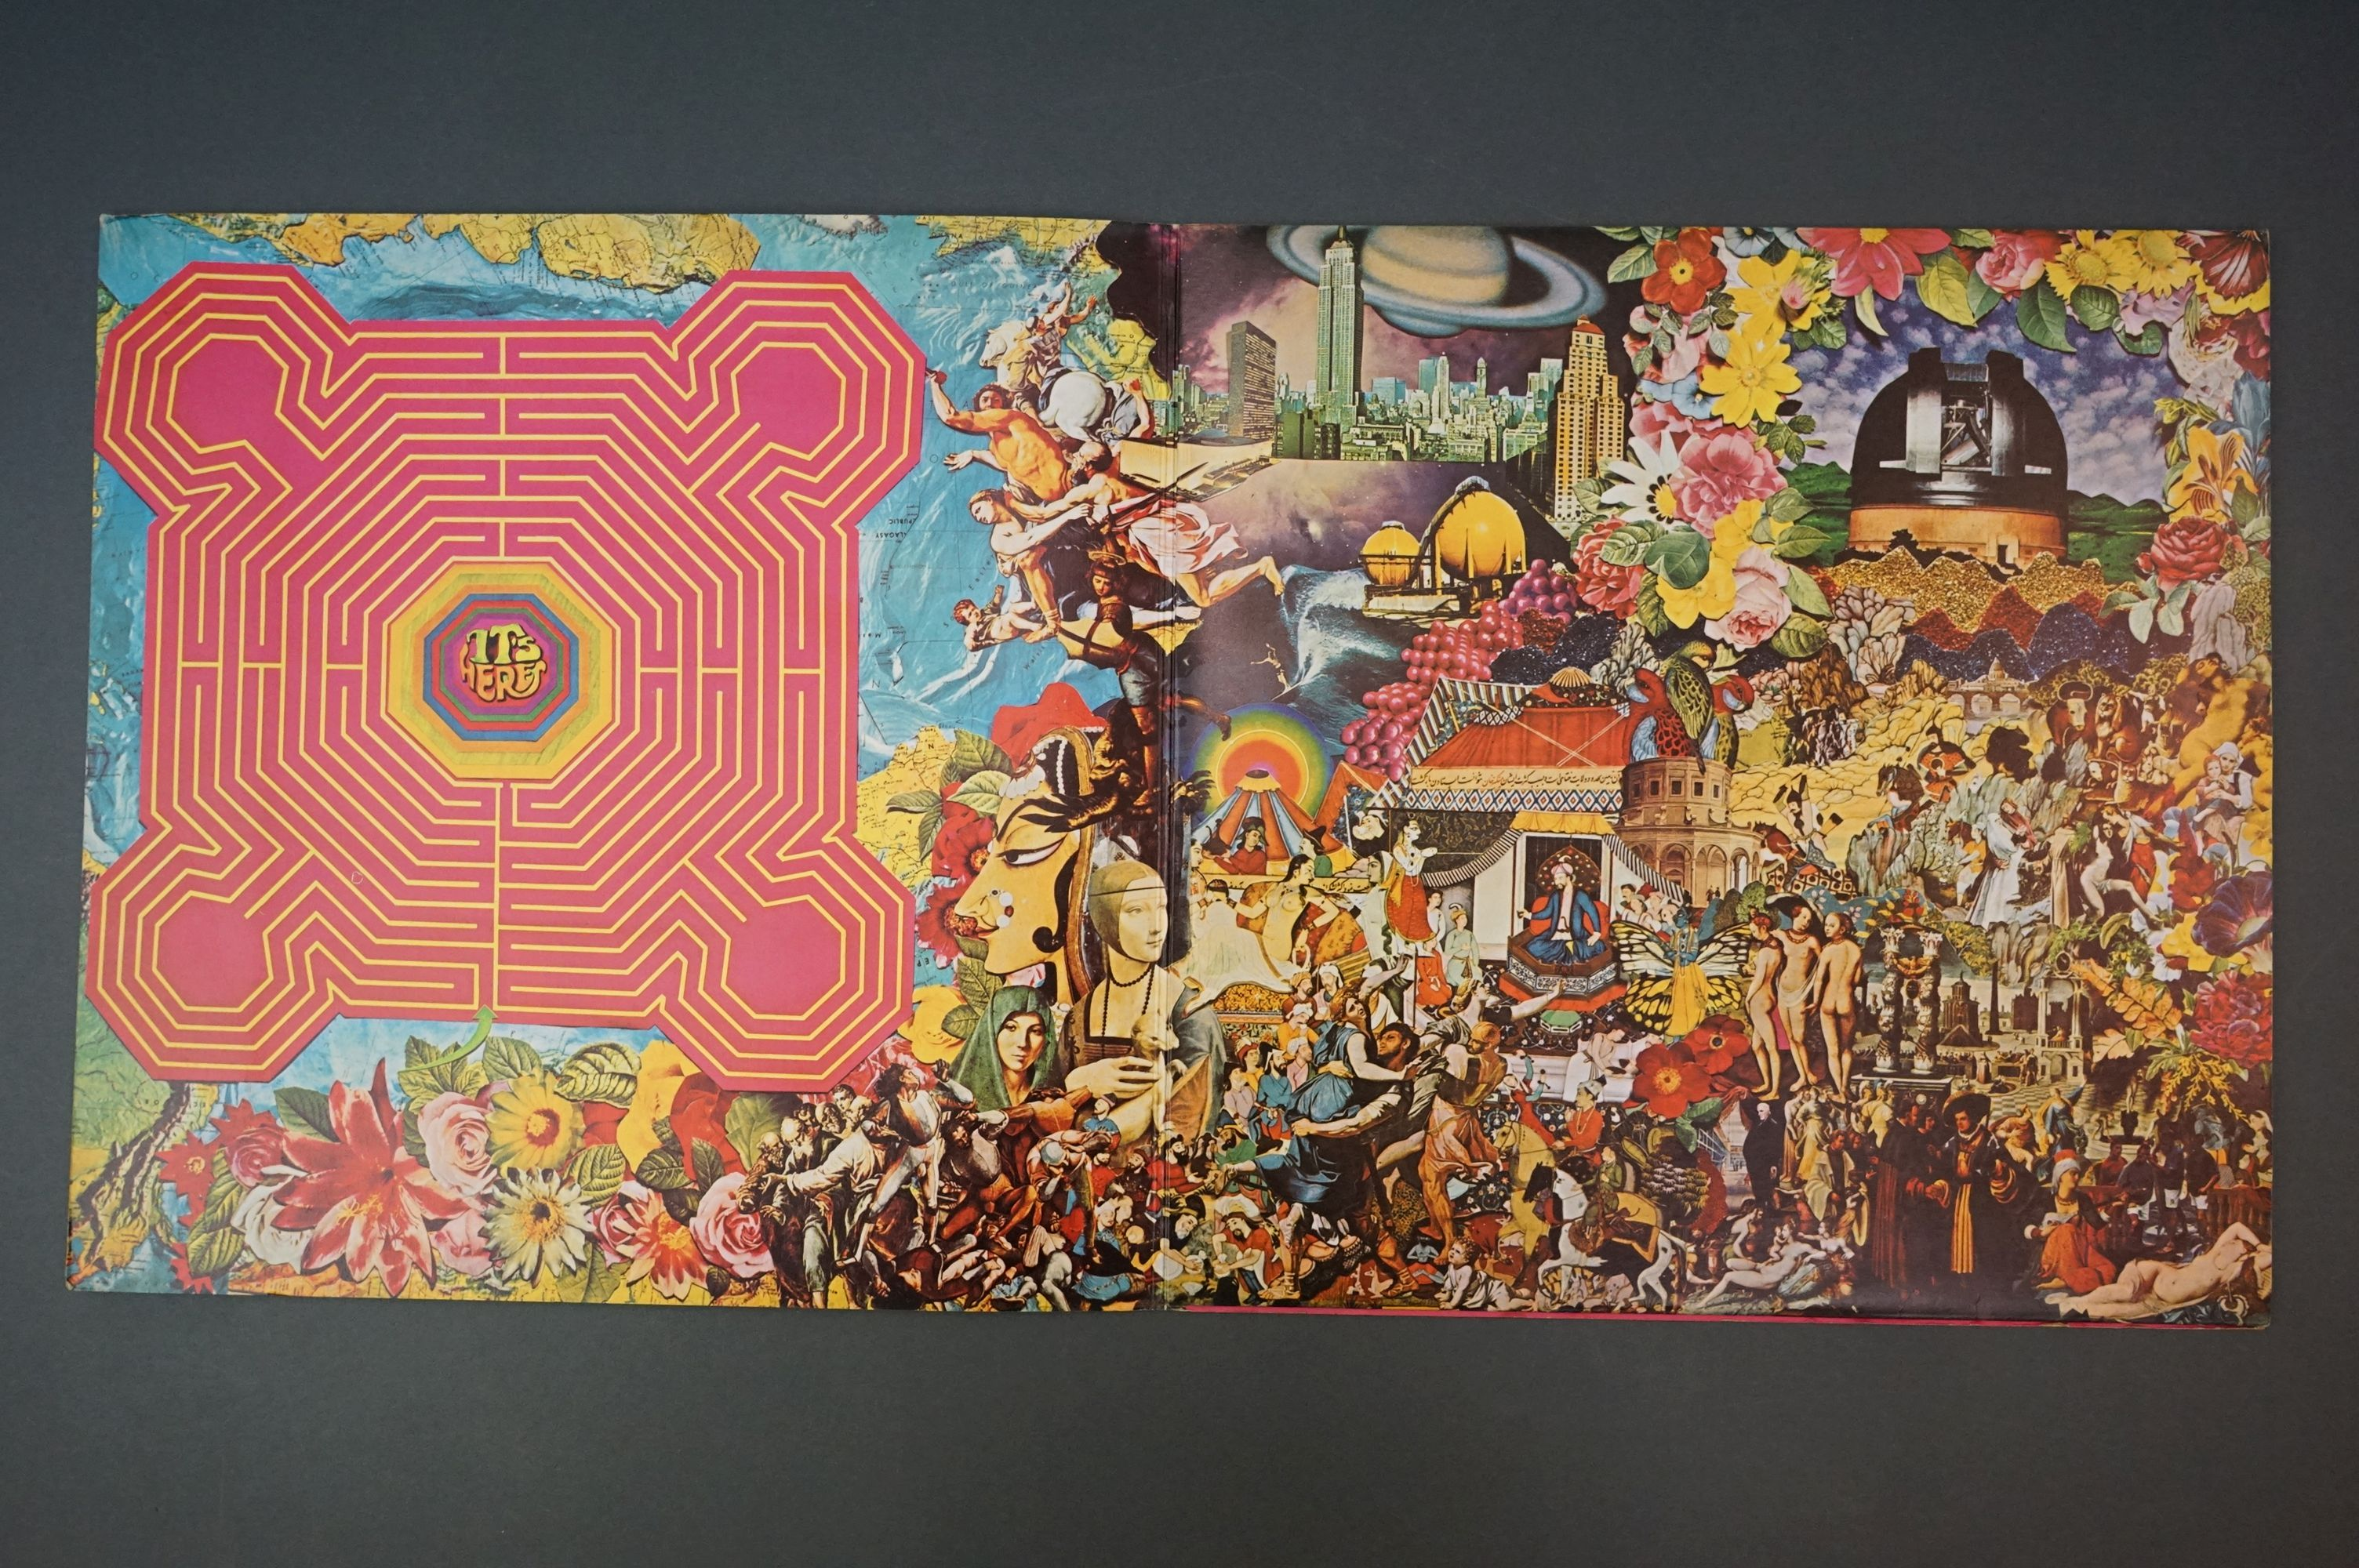 Vinyl - The Rolling Stones Their Satanic Majesties Request TXS103, Decca unboxed green stereo label, - Image 2 of 7